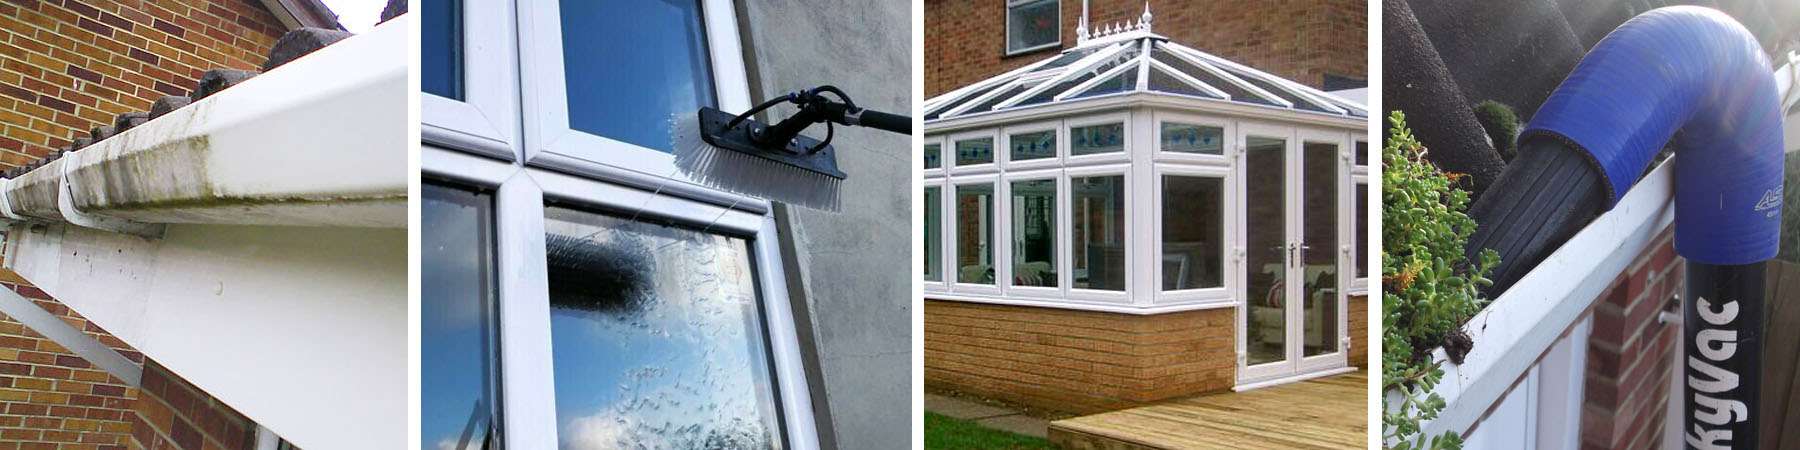 Window cleaning Hornchurch